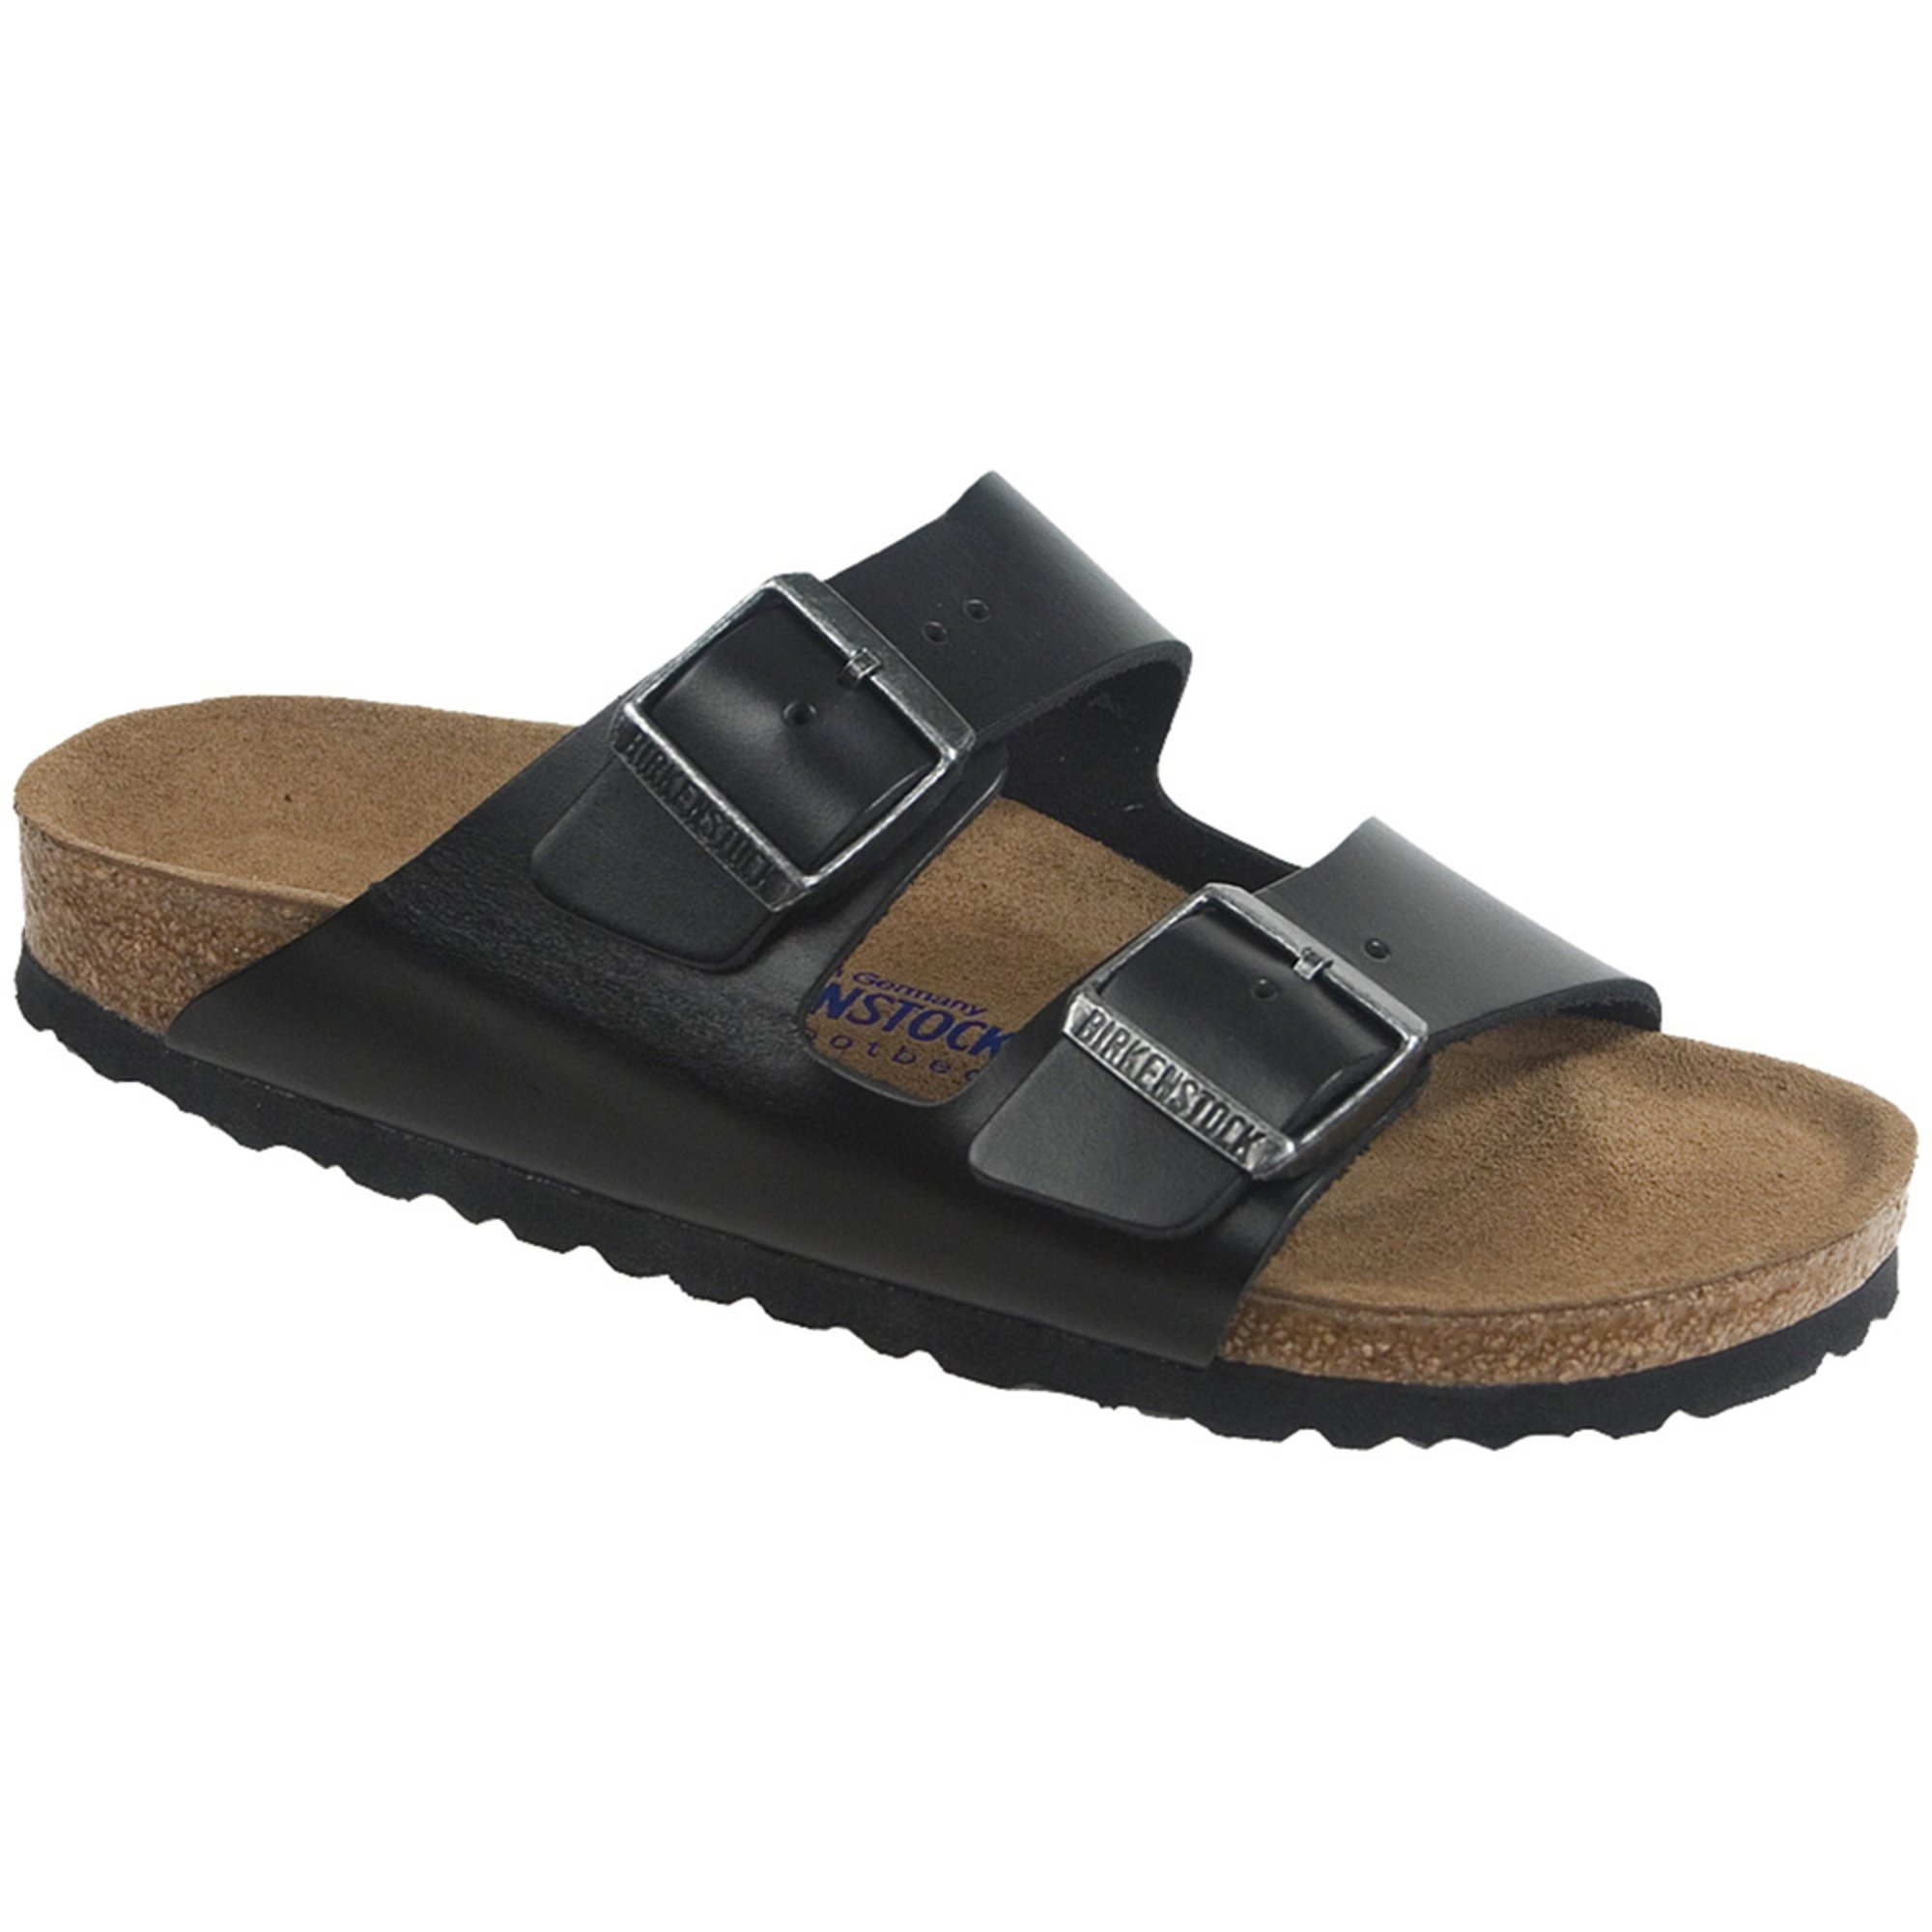 96875974846 Birkenstock Women s Arizona Sandal